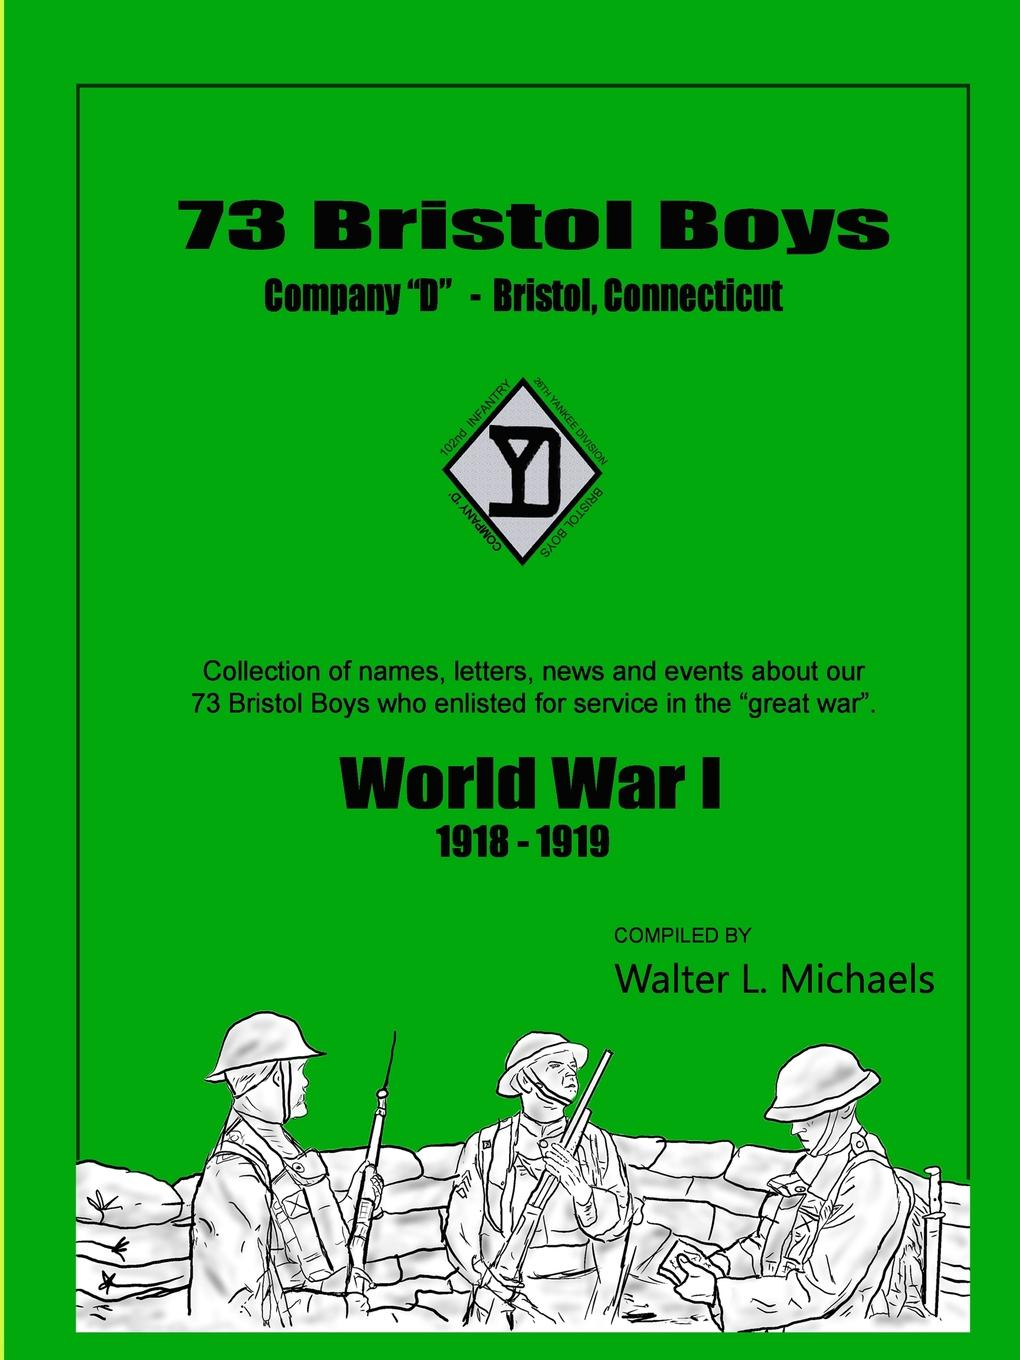 Walter Michaels 73 Bristol Boys malcolm kemp extreme events robust portfolio construction in the presence of fat tails isbn 9780470976791